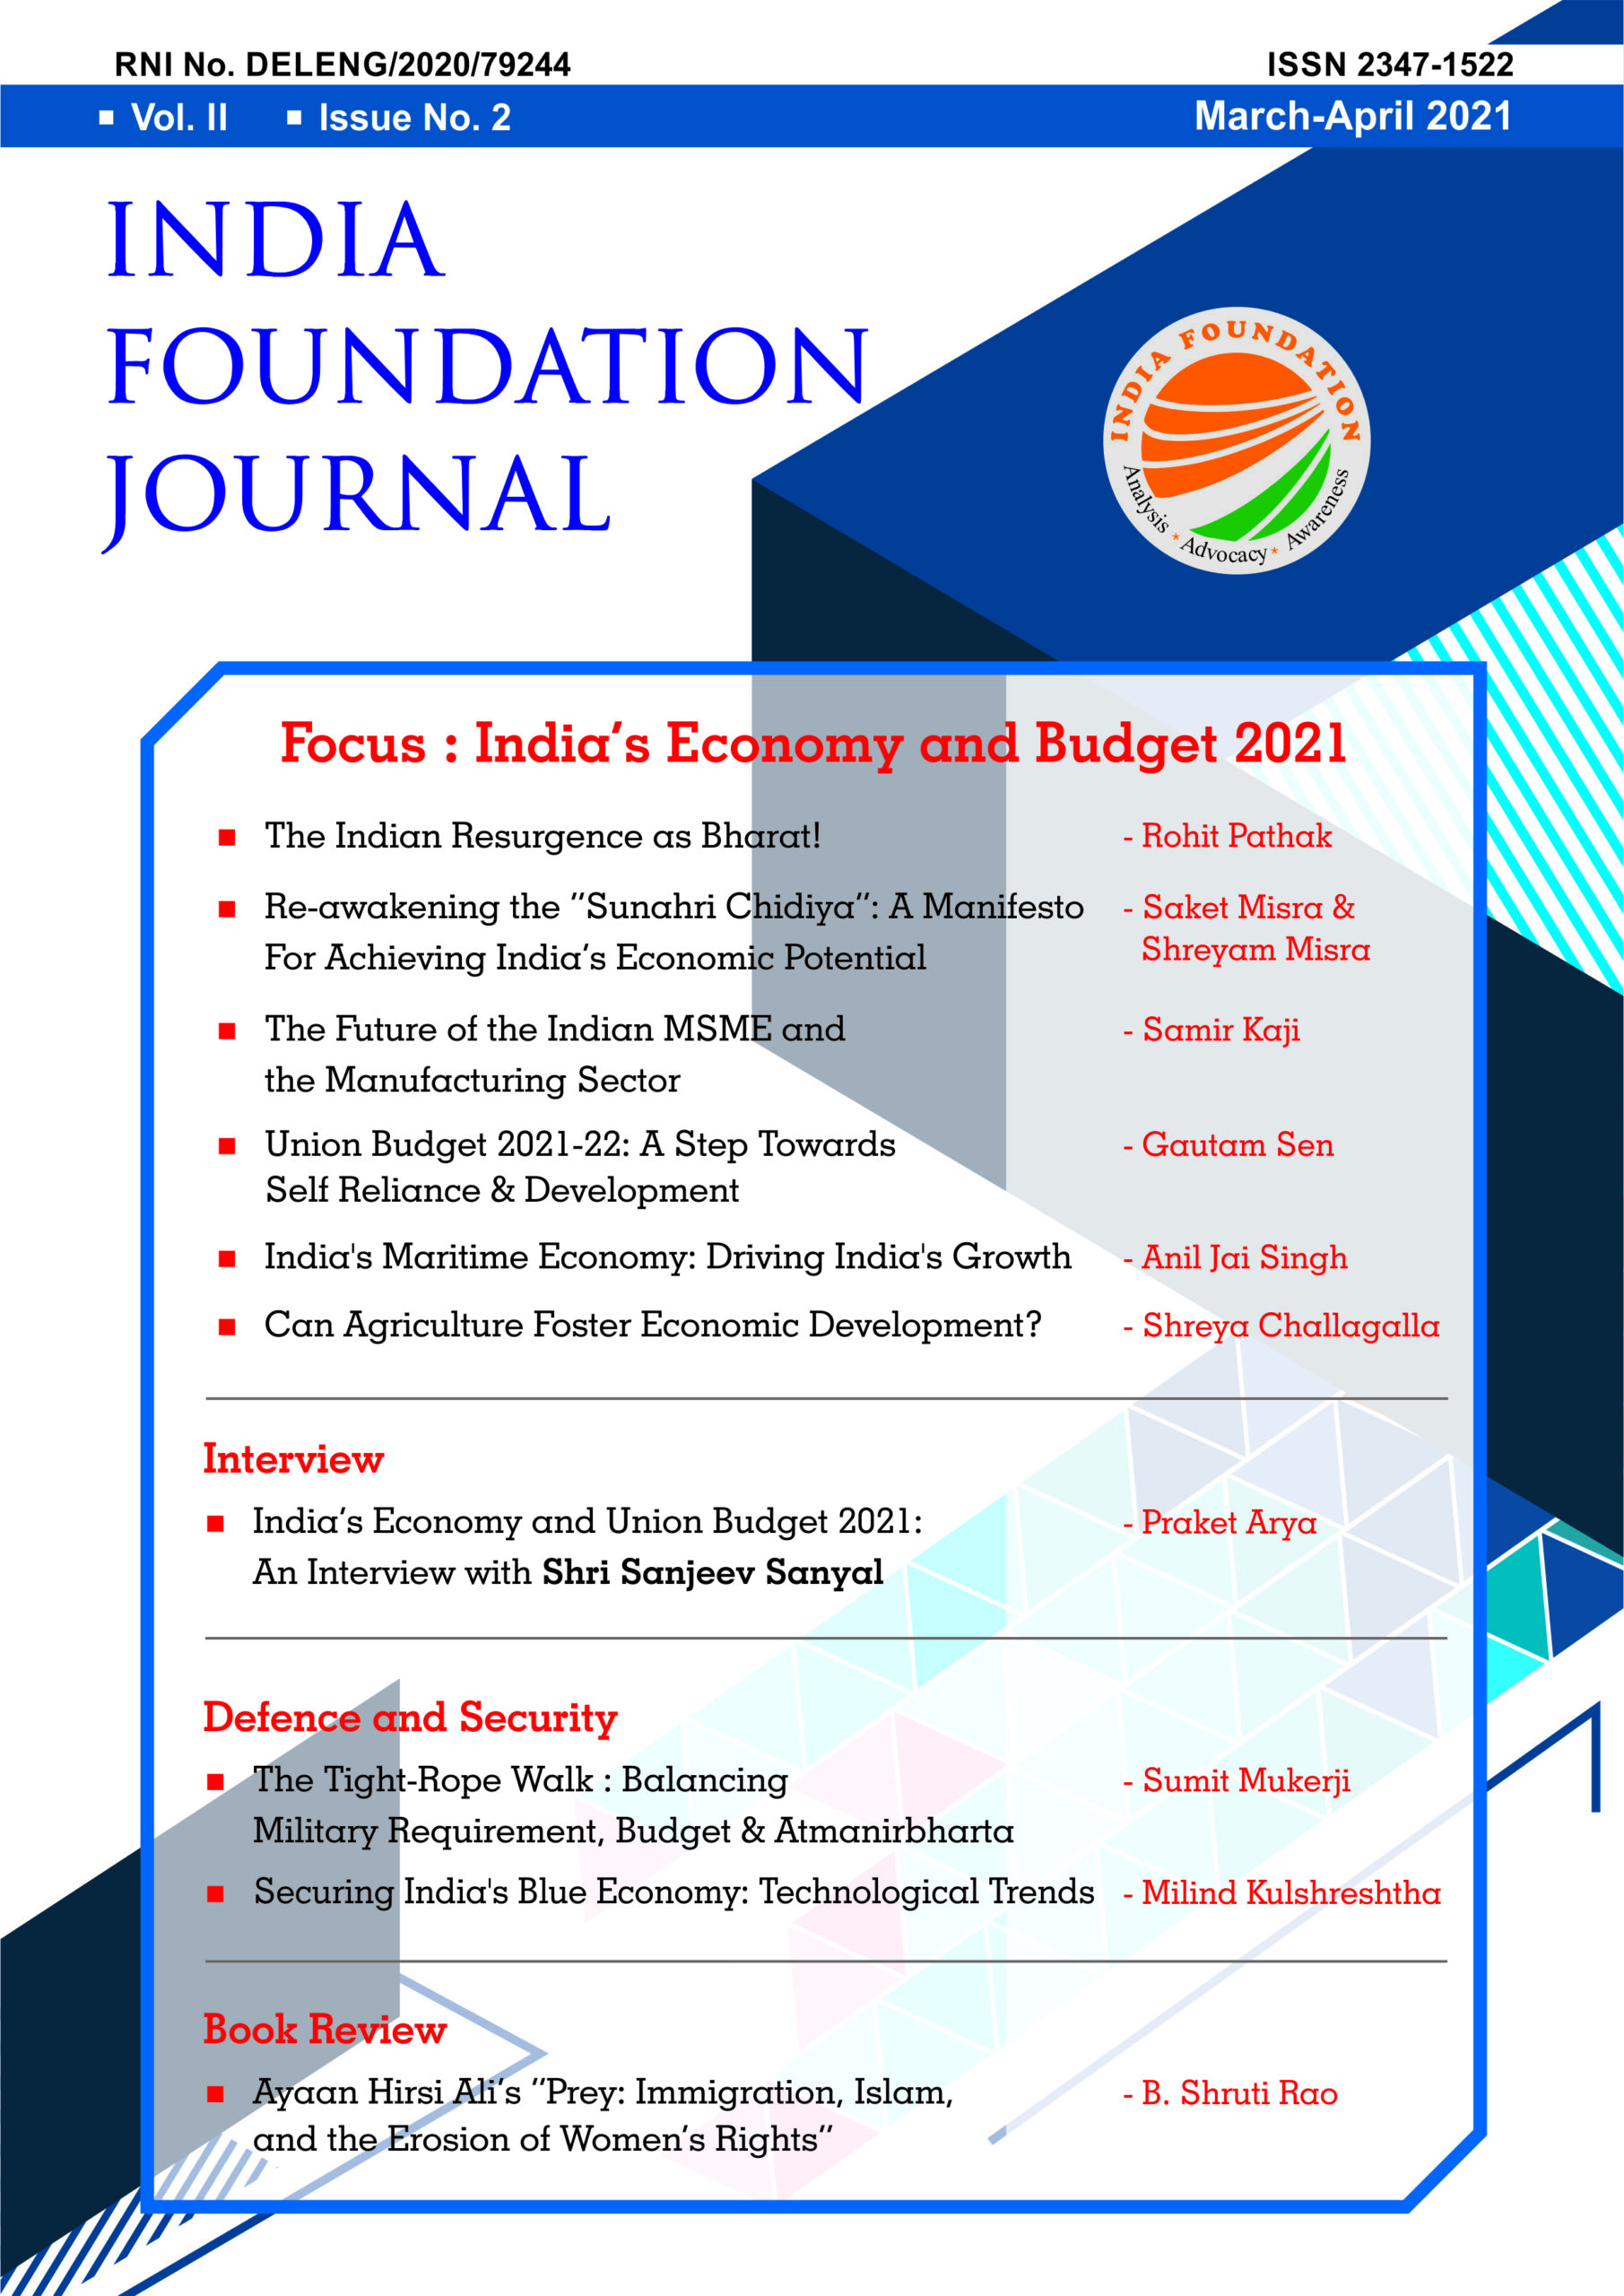 India Foundation Journal March-April 2021